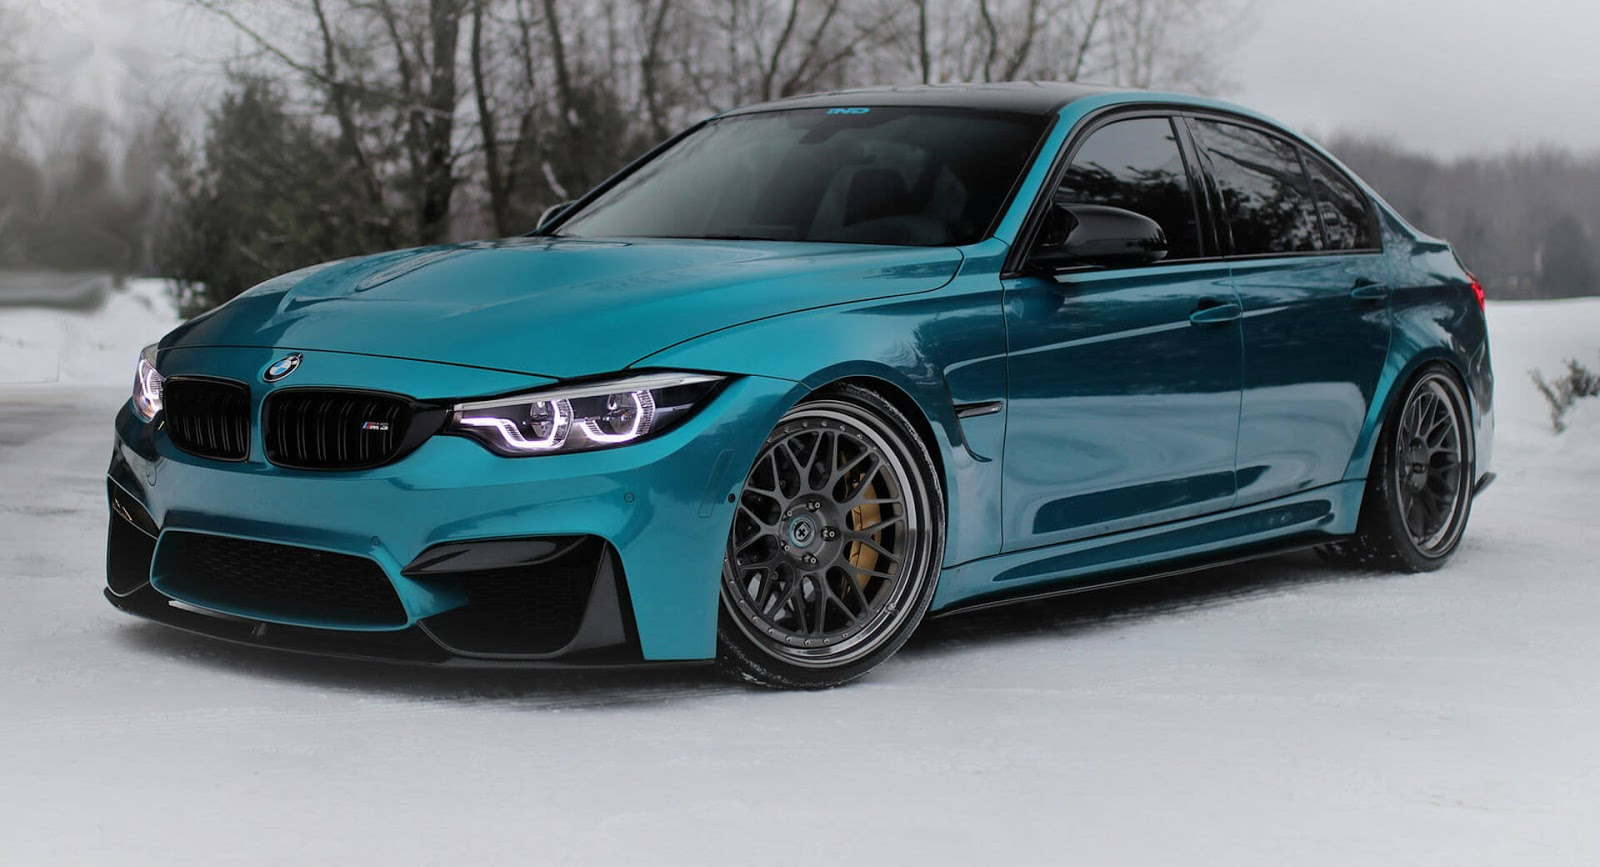 Bmw M3 With Subtle Mods Shines In Atlantis Blue Paintjob